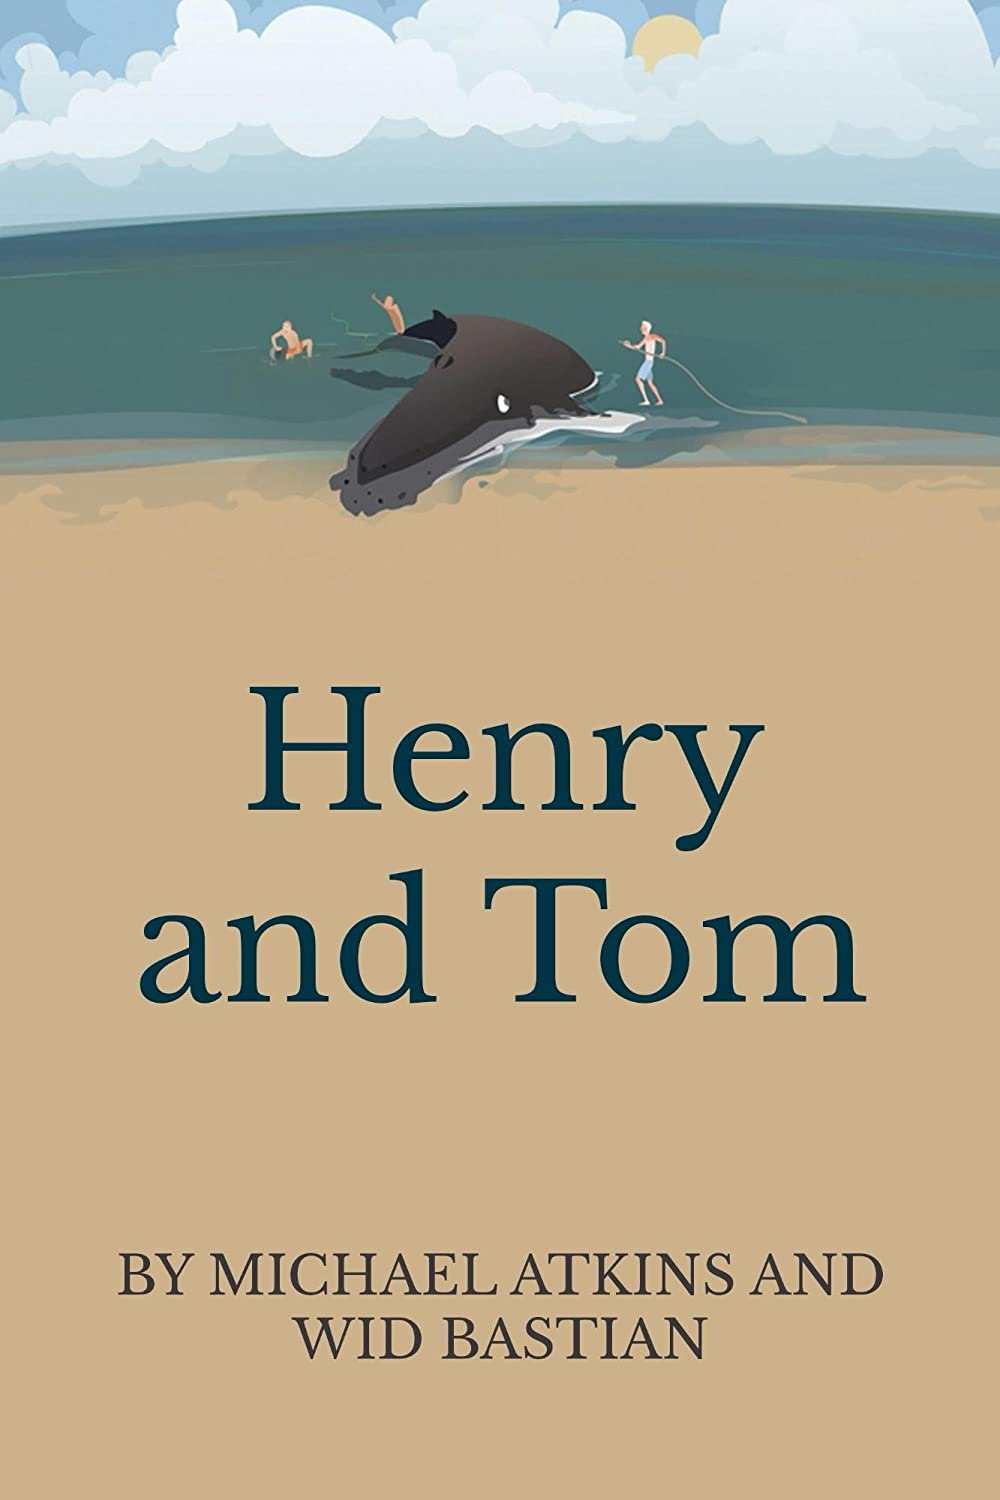 Henry and Tom [Kindle Edition]@henryandtom